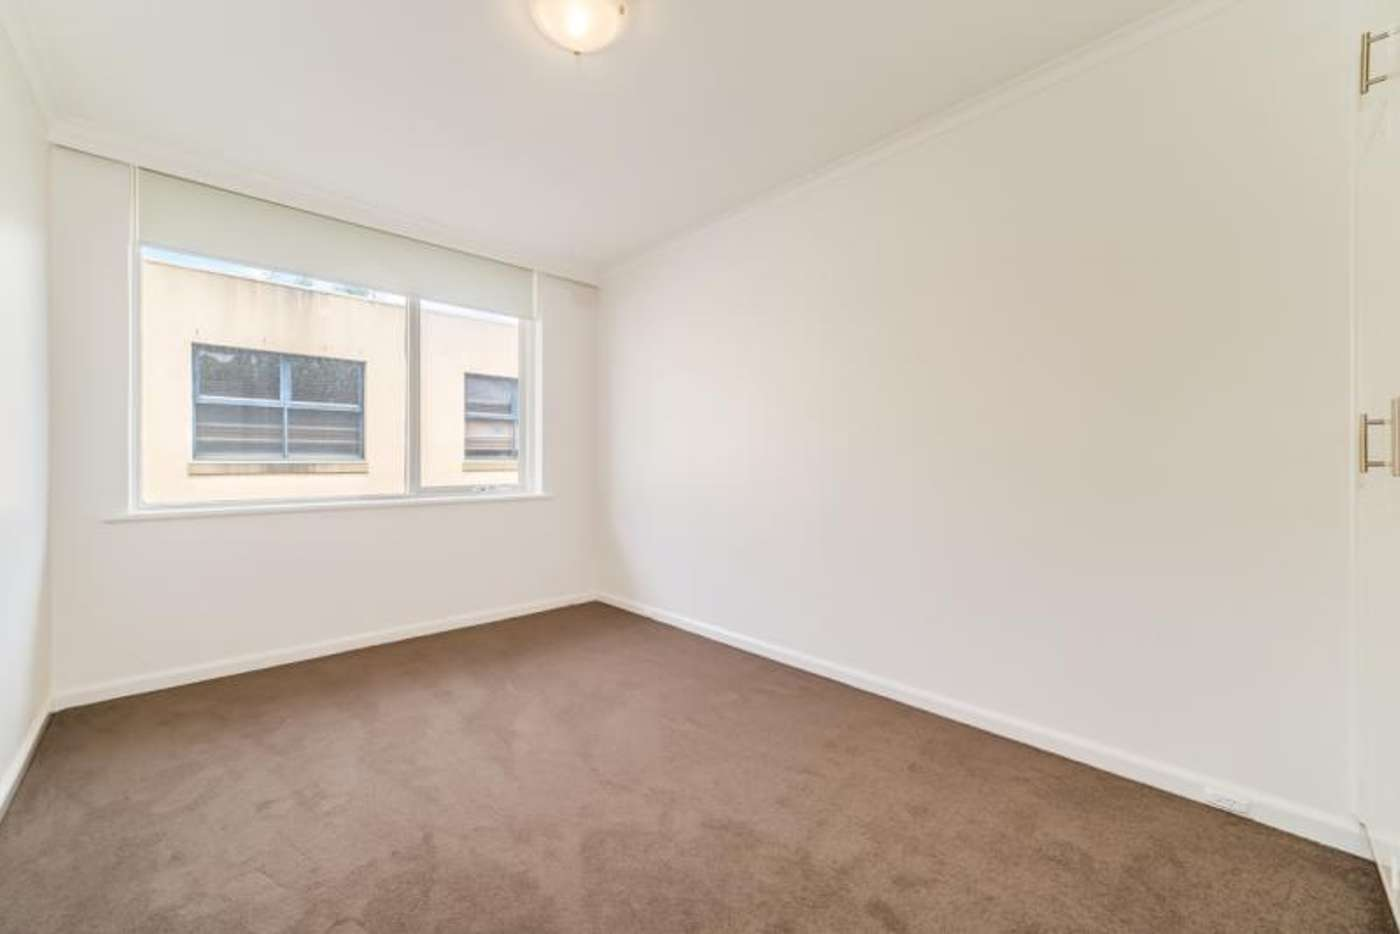 Fifth view of Homely apartment listing, 6/3 Carinya Crescent, Caulfield North VIC 3161